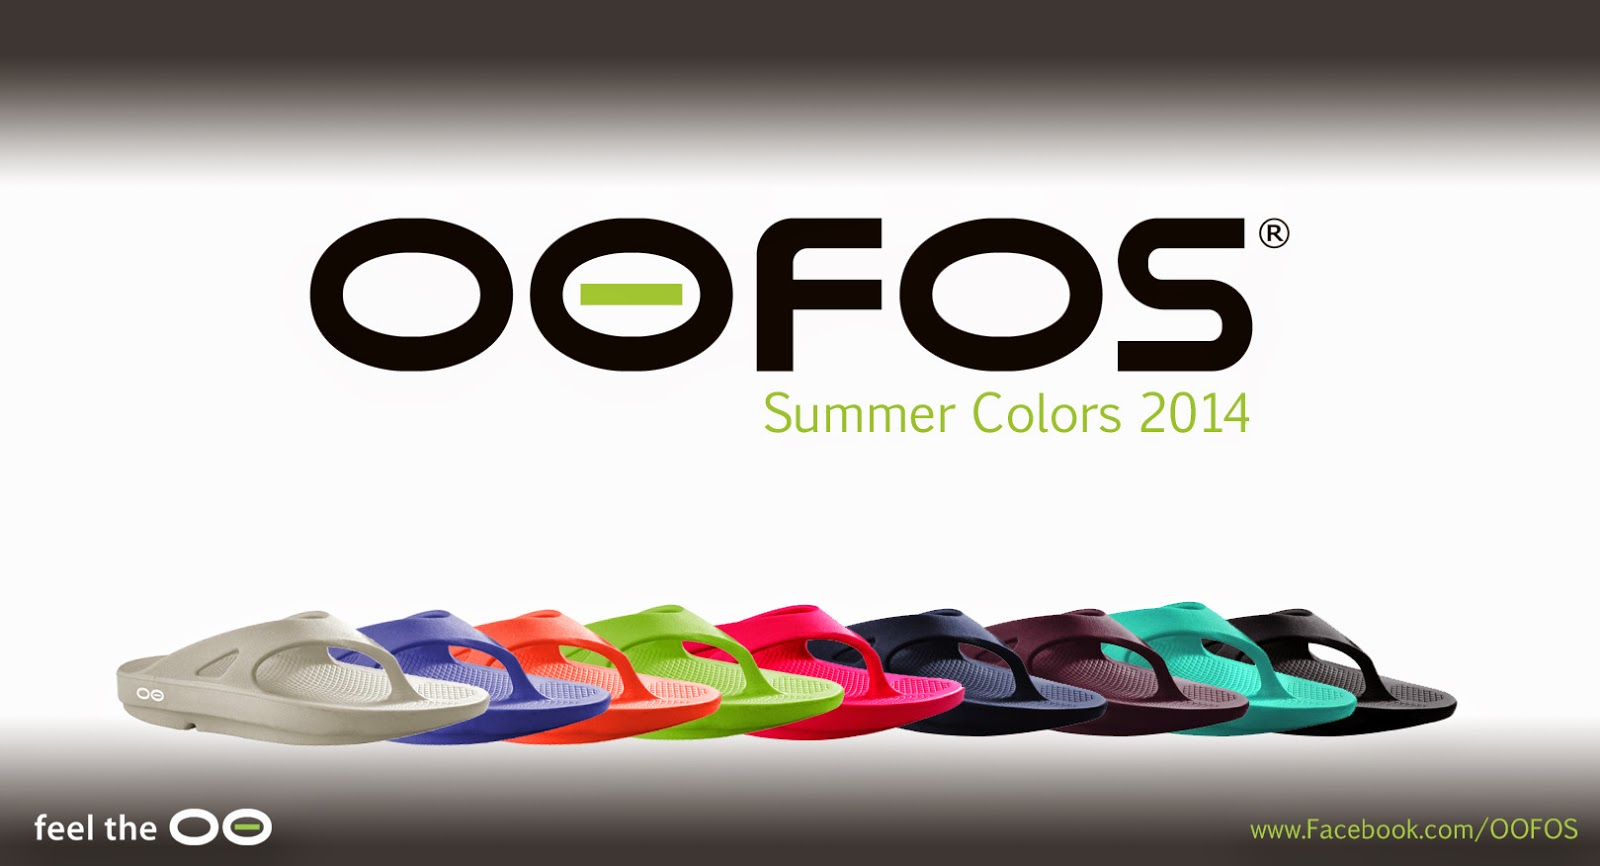 Road Trail Run Oofos Recovery And Comfort Sandals Review